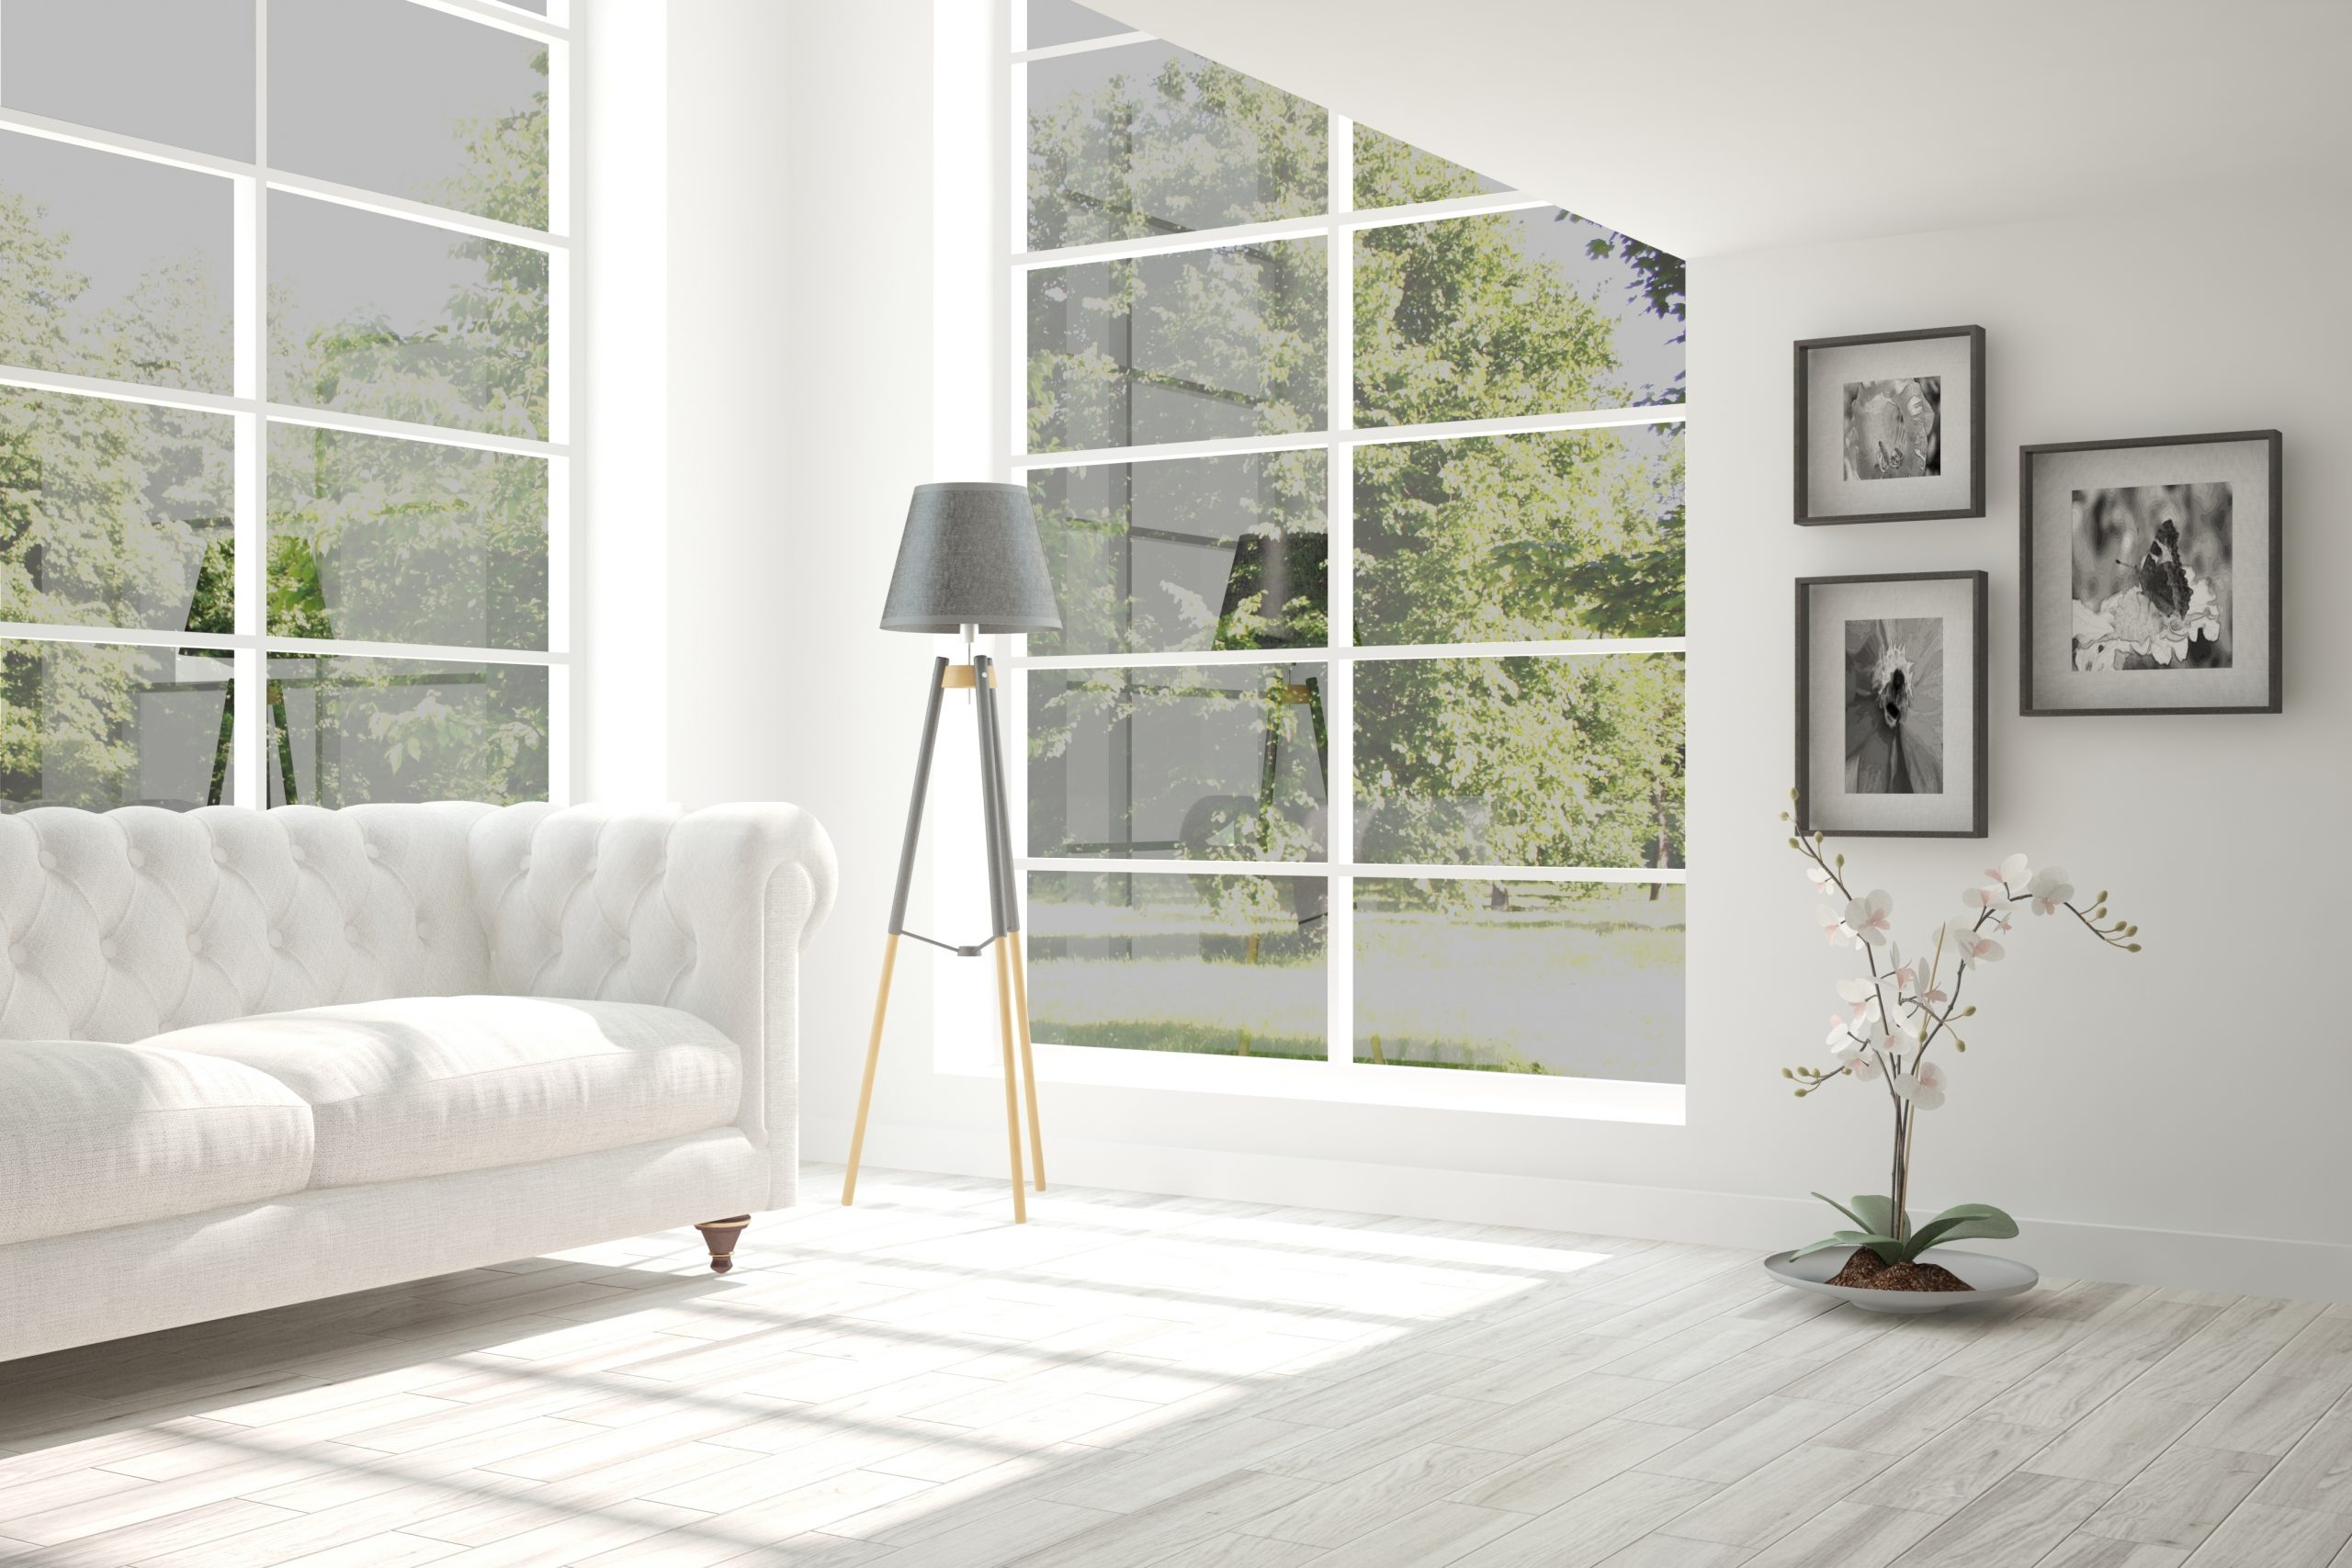 White One Way Vision Privacy Window Film